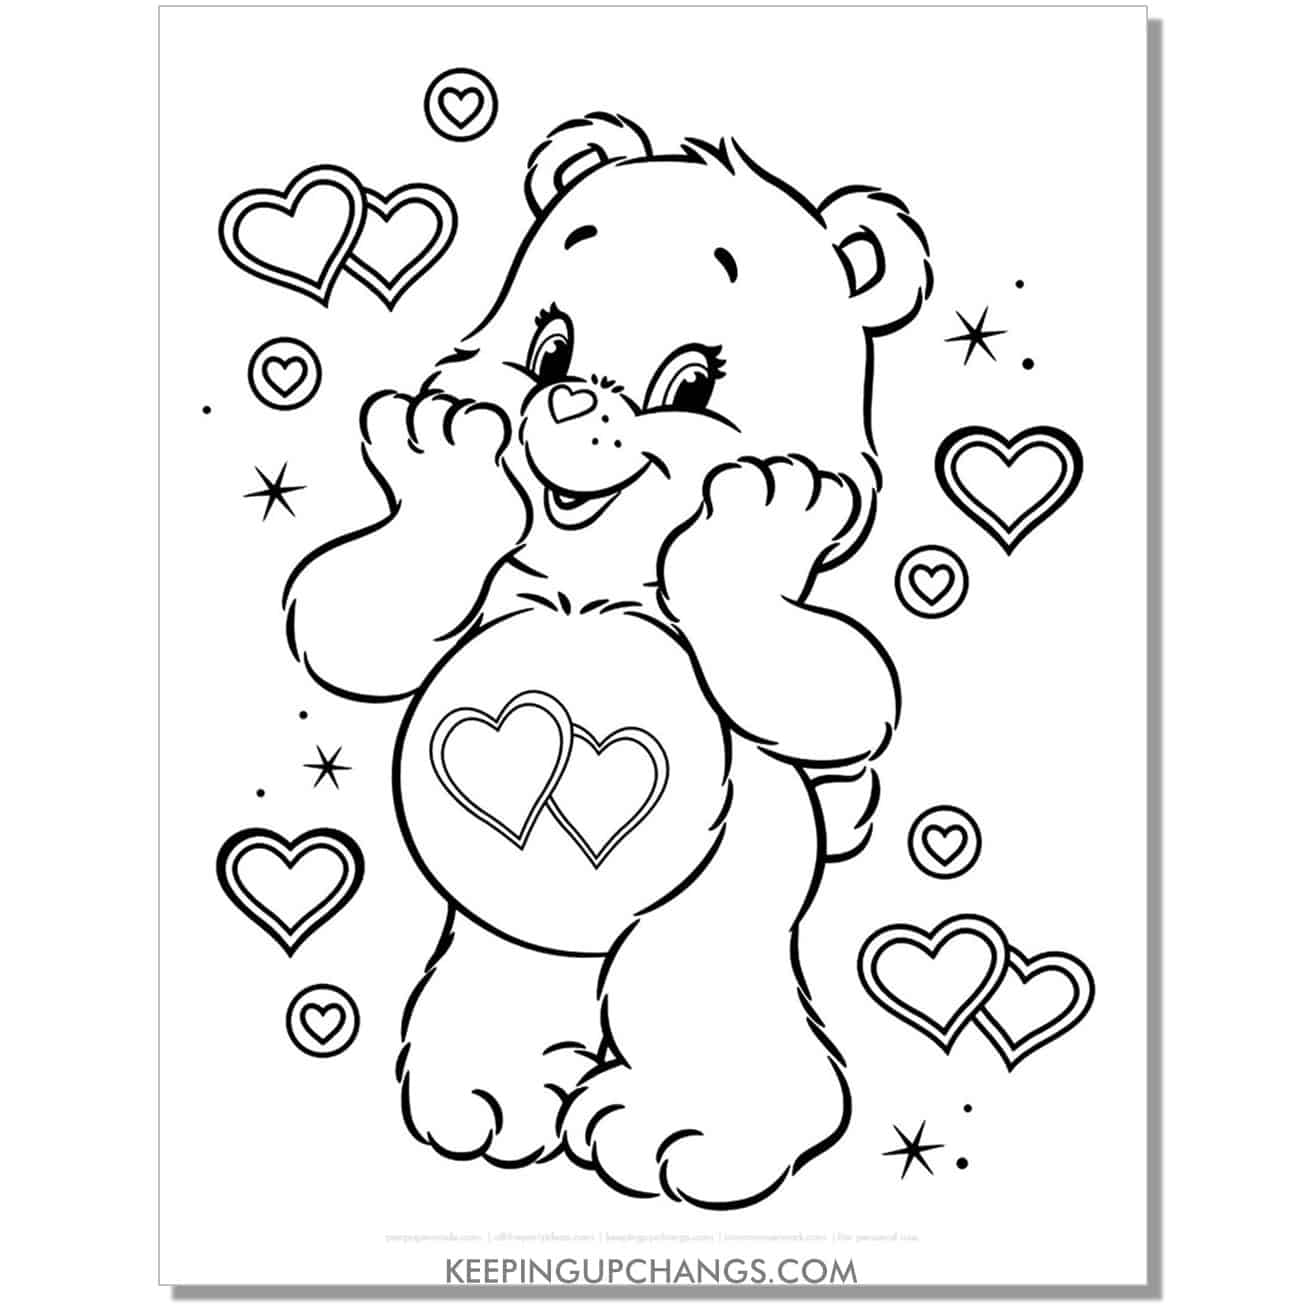 love a lot care bear with lots of hearts coloring page.